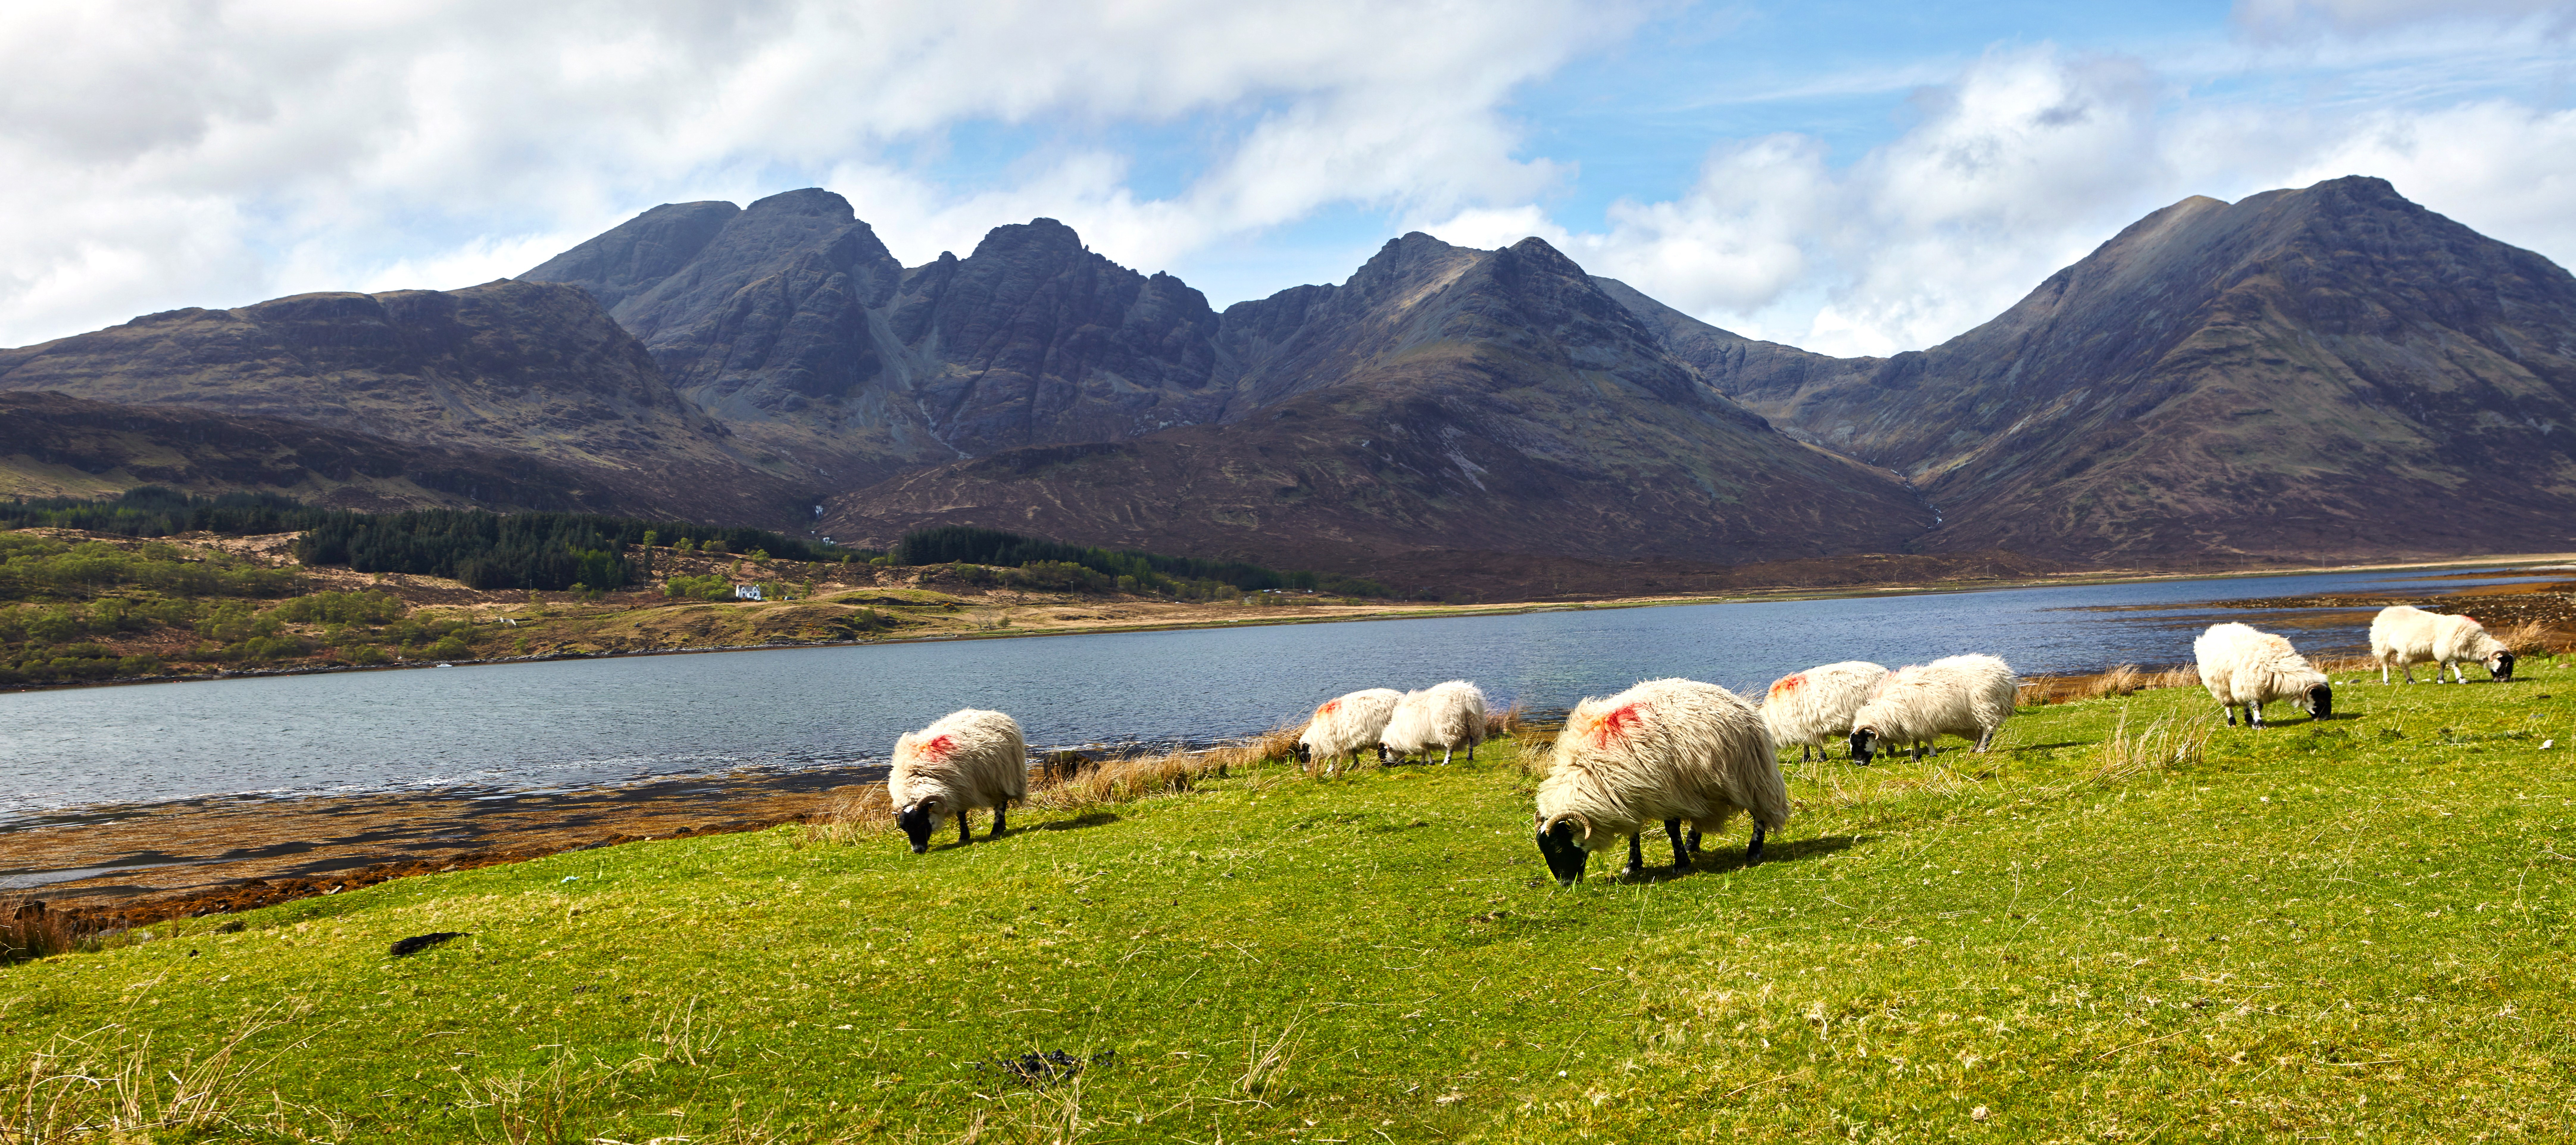 sheep-loch-and-hills-scotland-shutterstock.jpg